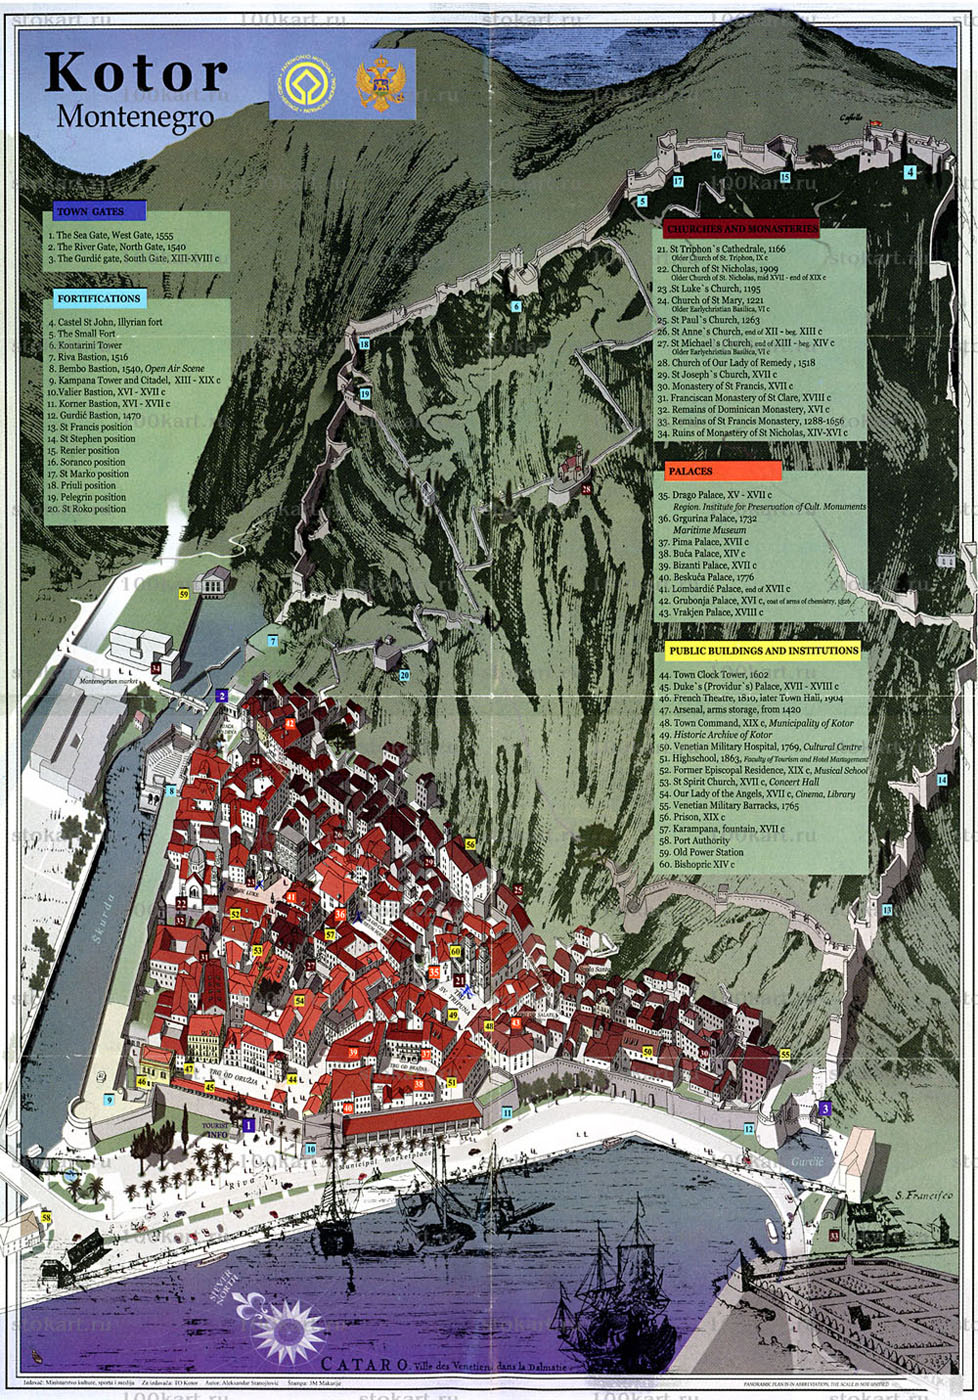 Map showing sites within the Old Town of Kotor as well as the Venetian fortifications on the mountain slopes and ridges.